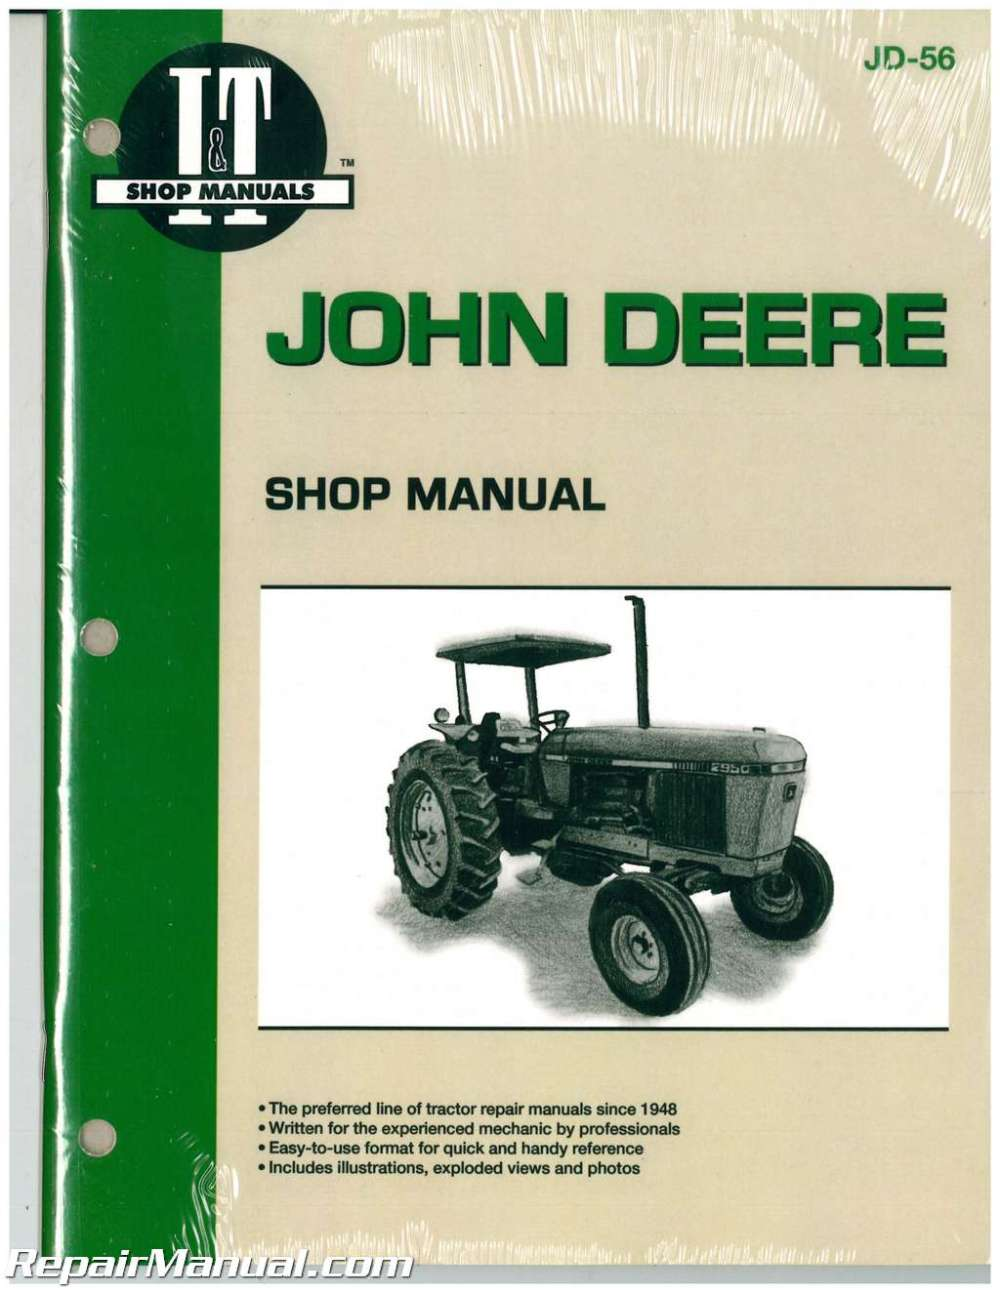 medium resolution of john deere 2840 2940 2950 tractor workshop manual john deere 2940 wiring diagram john deere 2940 wiring diagram